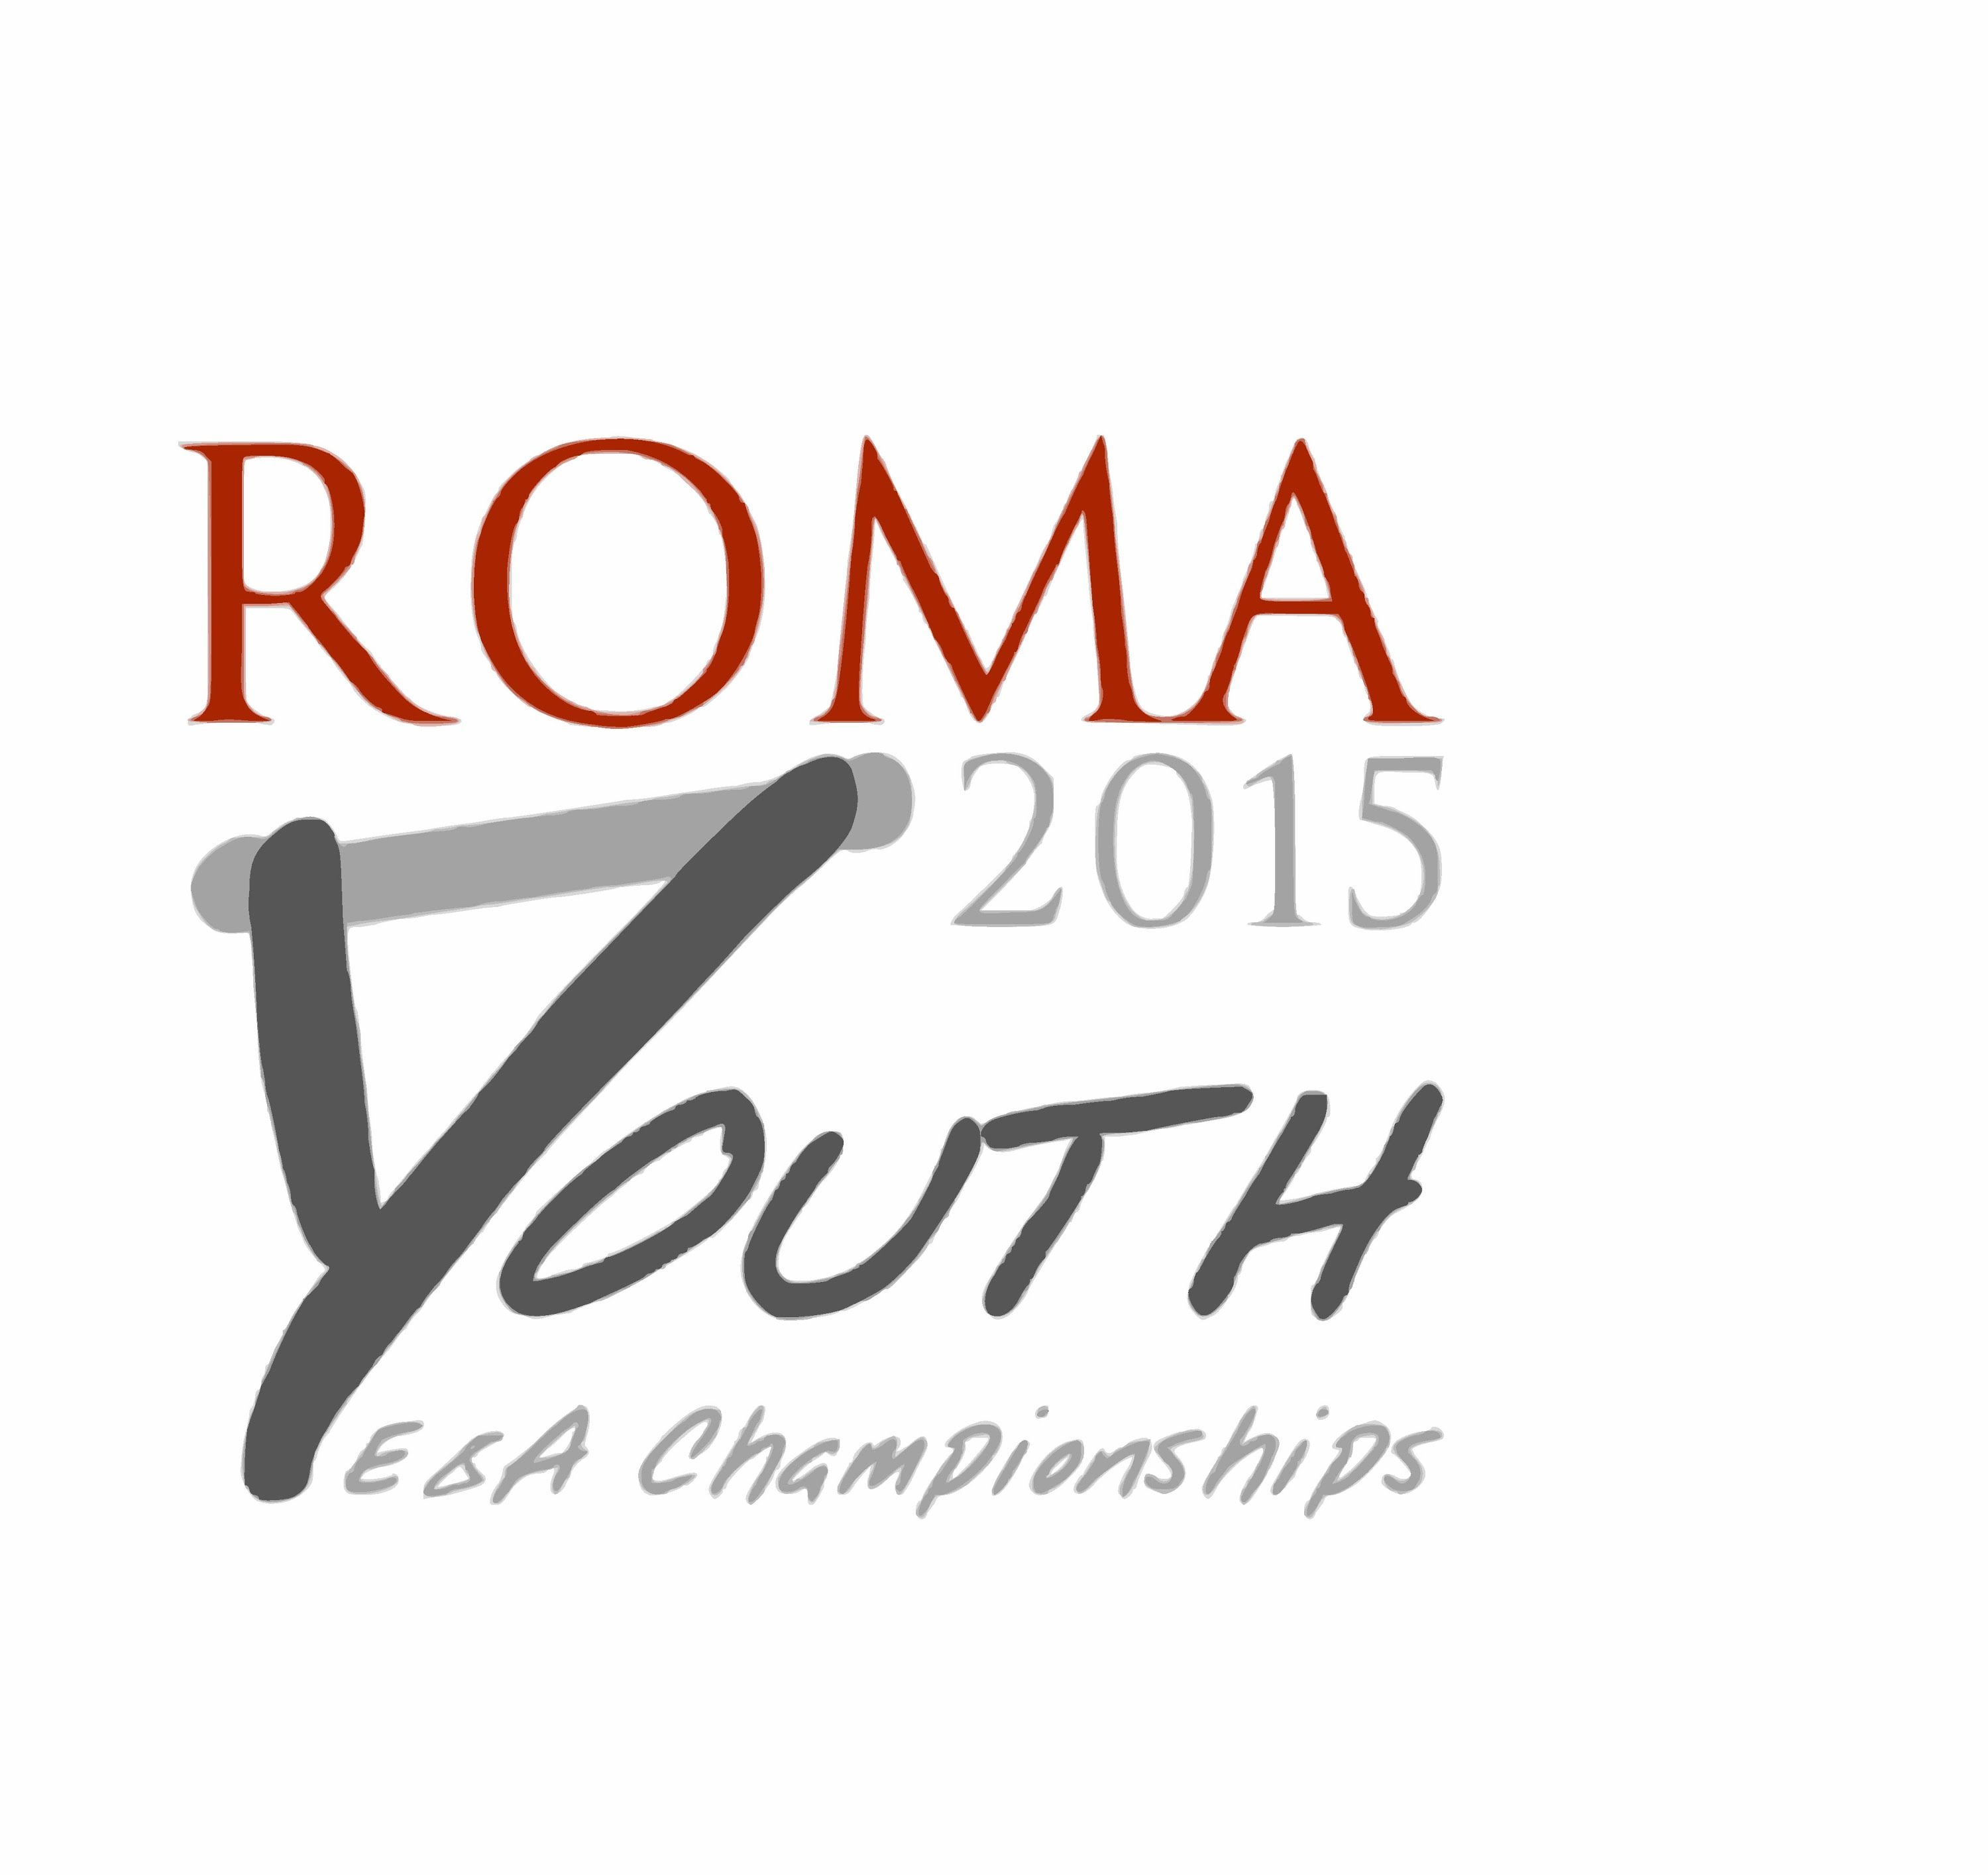 Roma 2015 Youth  E&A championships - 5th august - first day